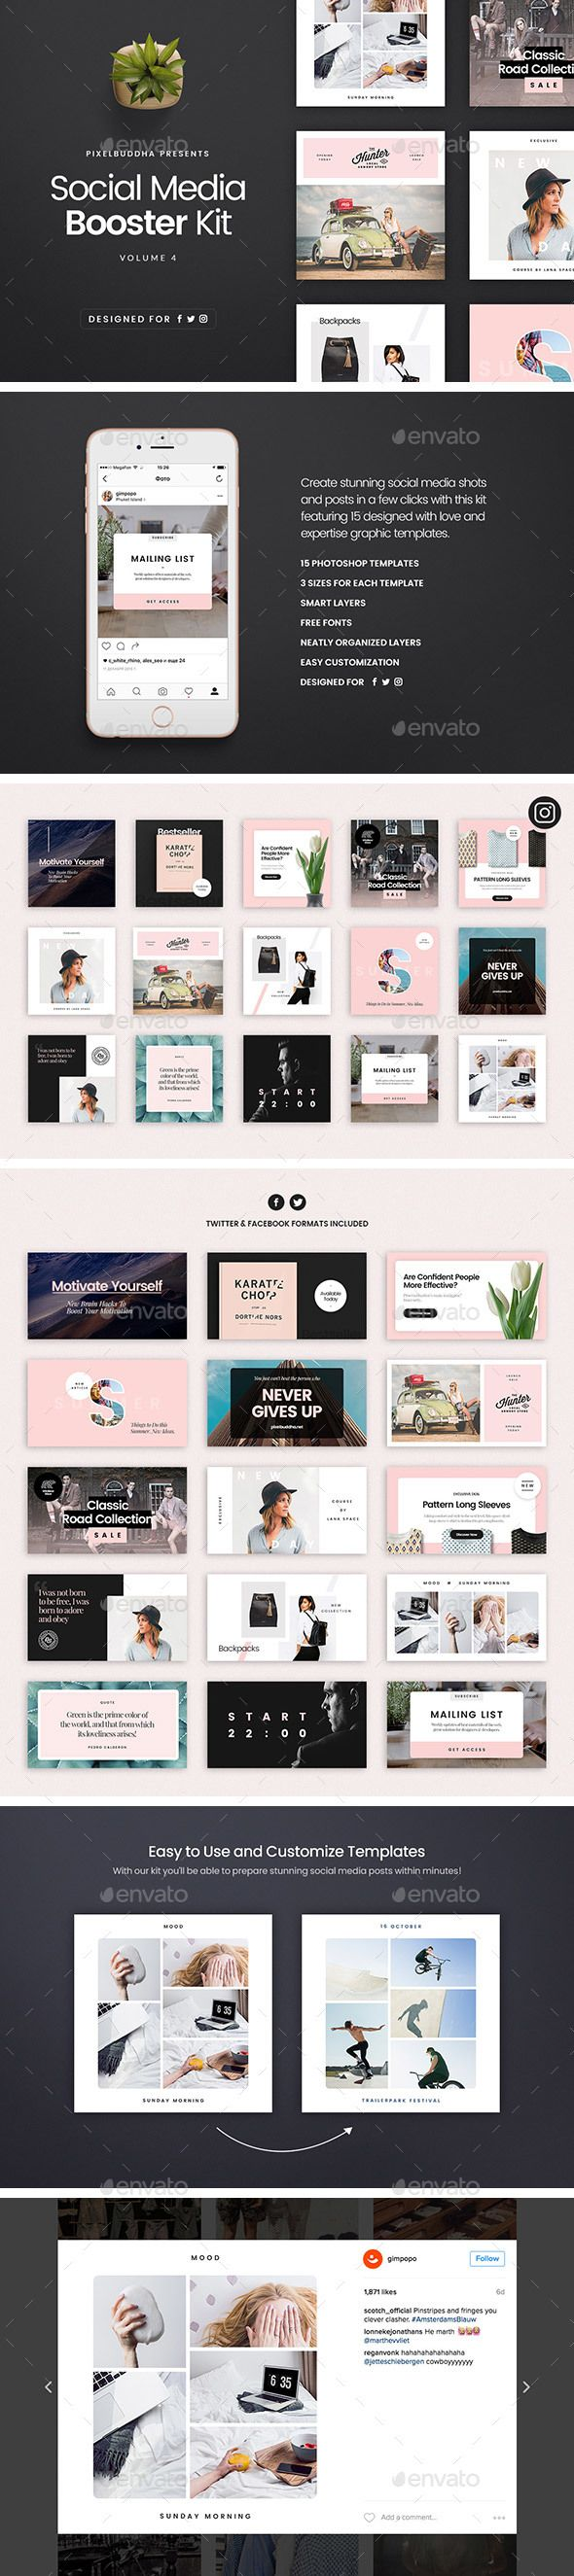 Best 25 media kit template ideas on pinterest media kit a blog social media booster kit 4 pronofoot35fo Image collections